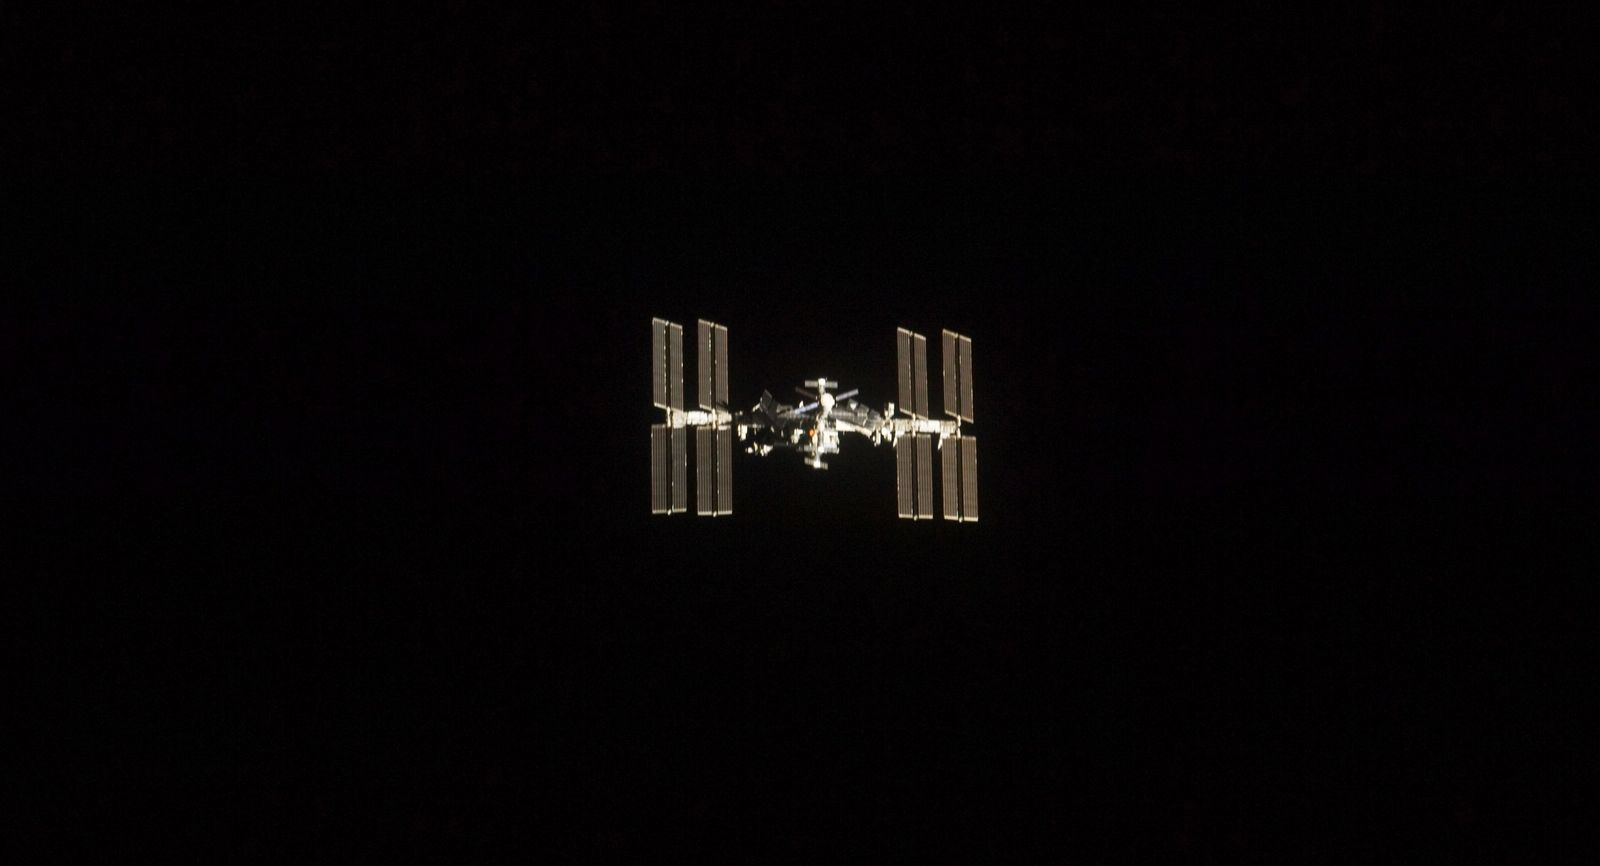 ISS Archiv